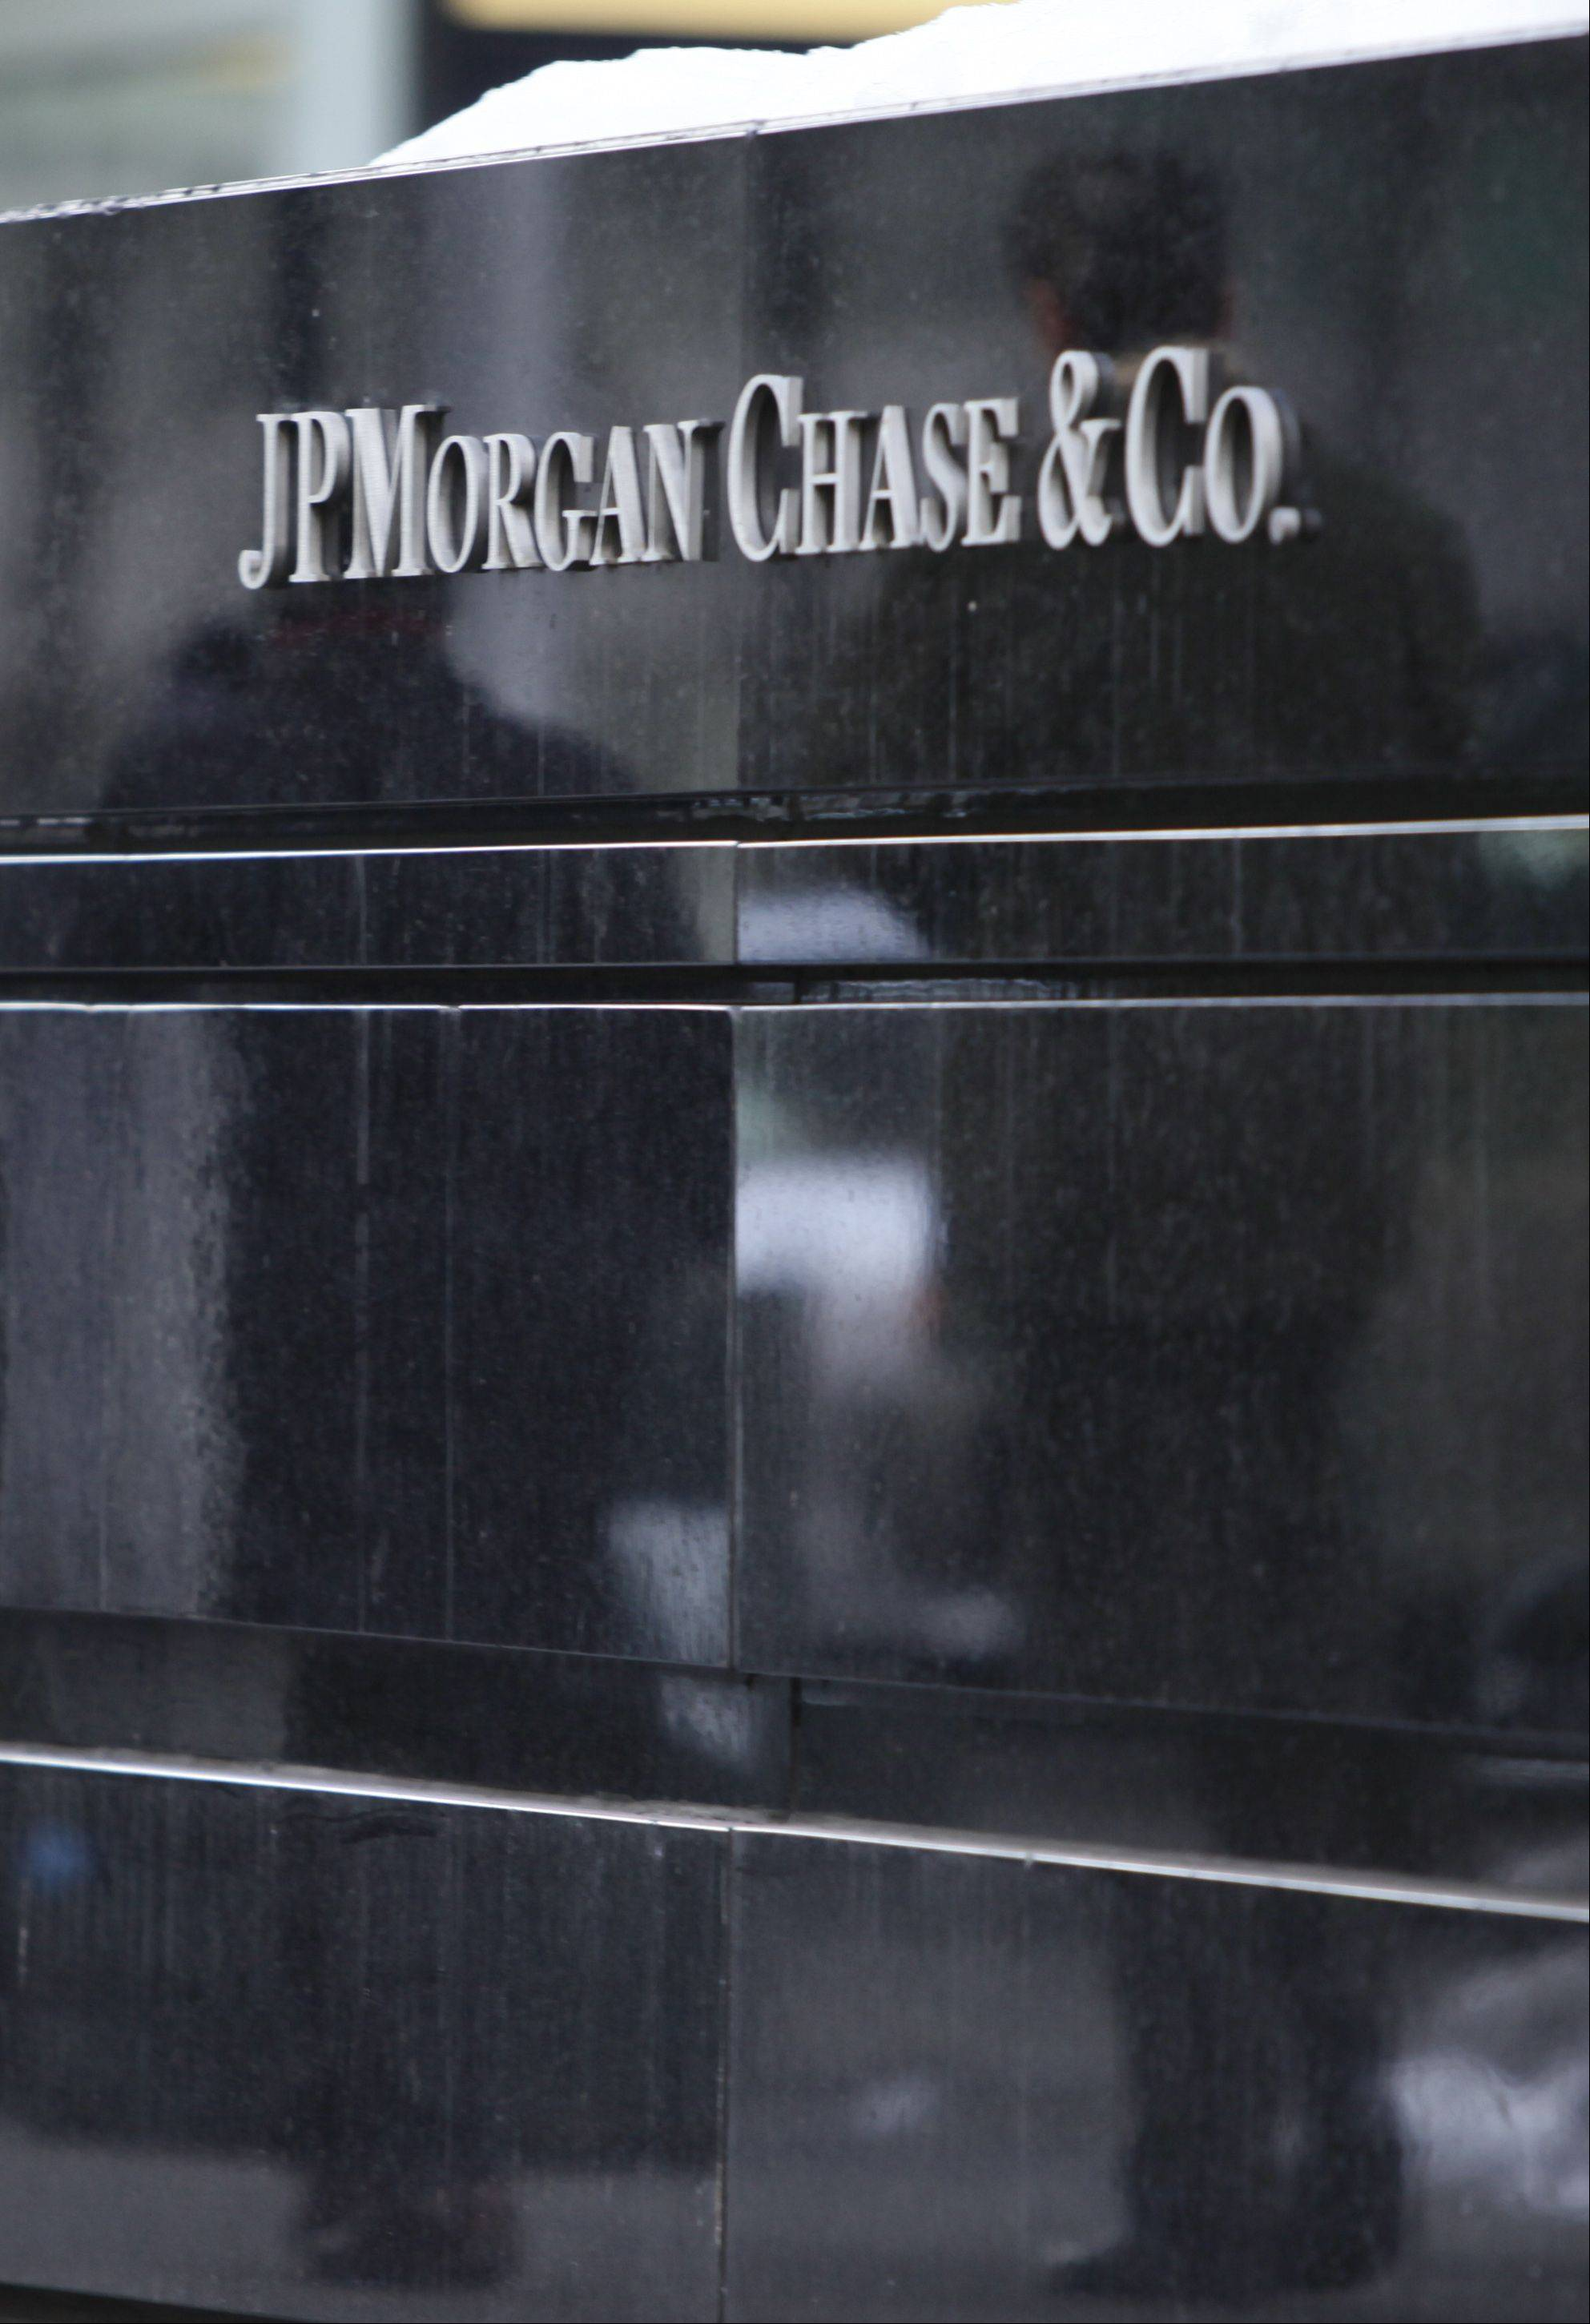 JPMorgan Chase, the biggest U.S. bank by assets, says it returned to a profit in the fourth quarter. The bank said it had net income of $5.3 billion in the last three months of 2013, compared with a profit of $5.7 billion in the same period a year earlier.